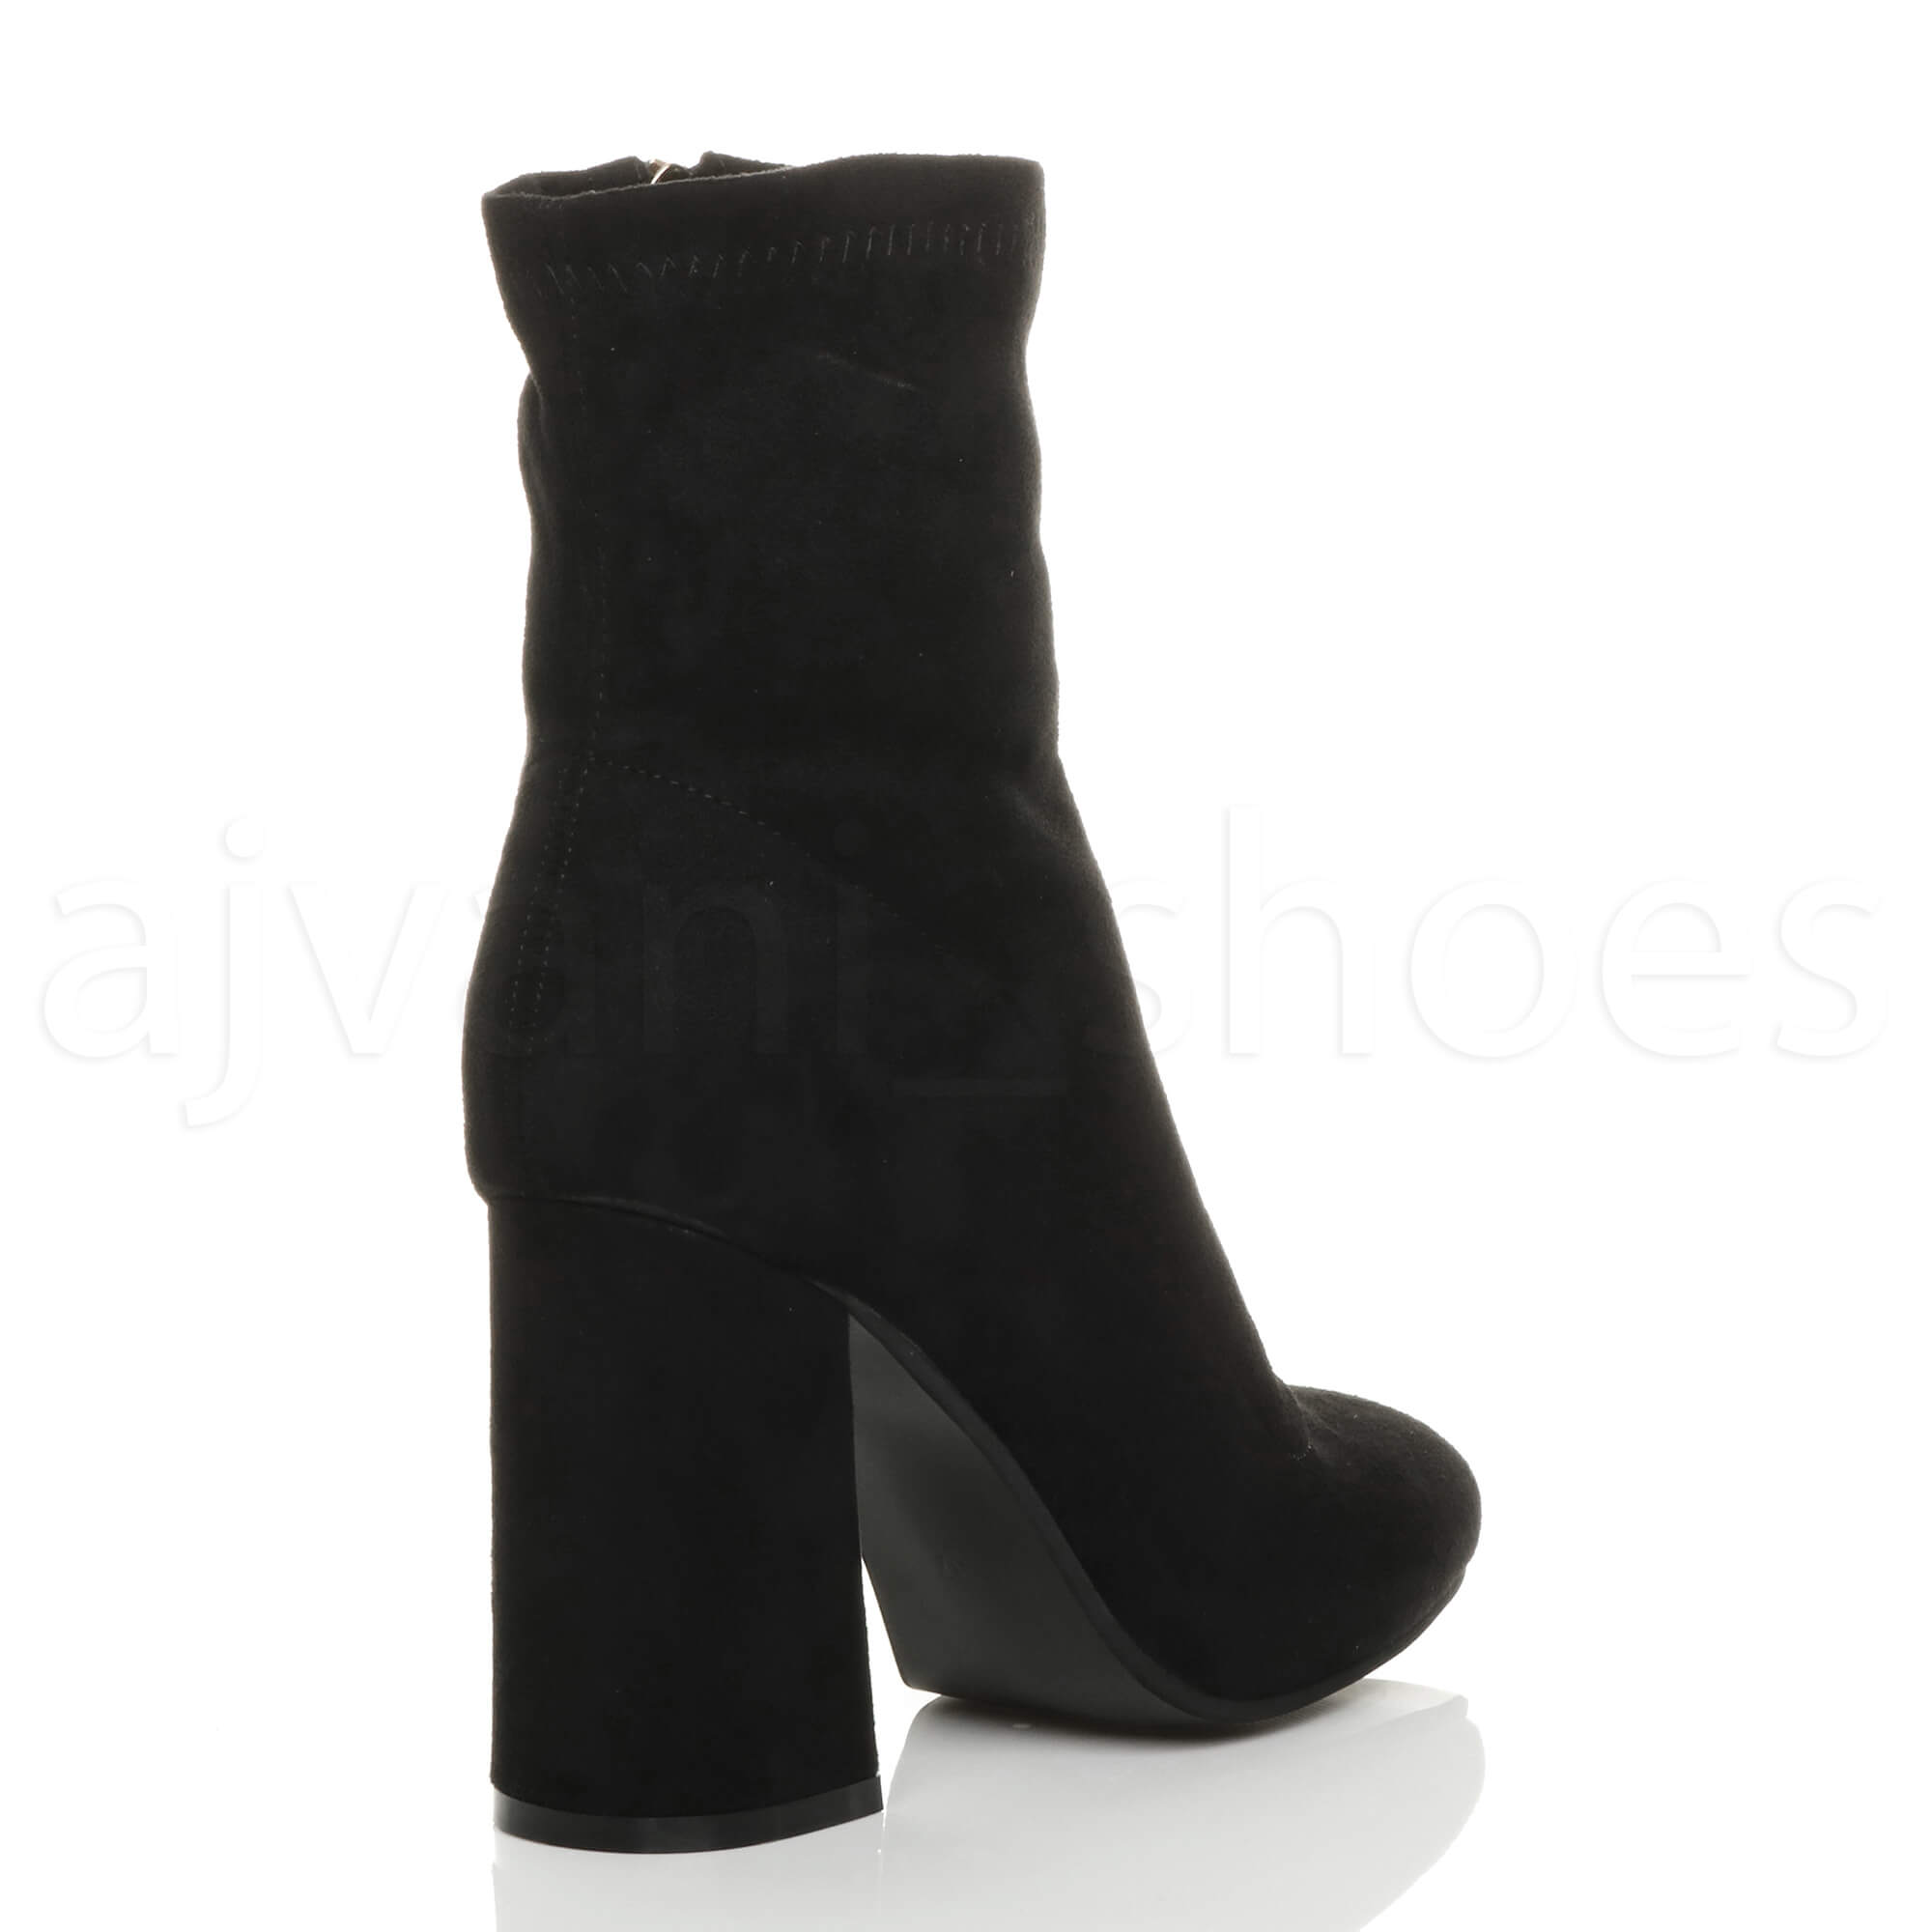 WOMENS-LADIES-HIGH-BLOCK-FLARED-HEEL-ZIP-PLAIN-FITTED-SOCK-ANKLE-BOOTS-SIZE